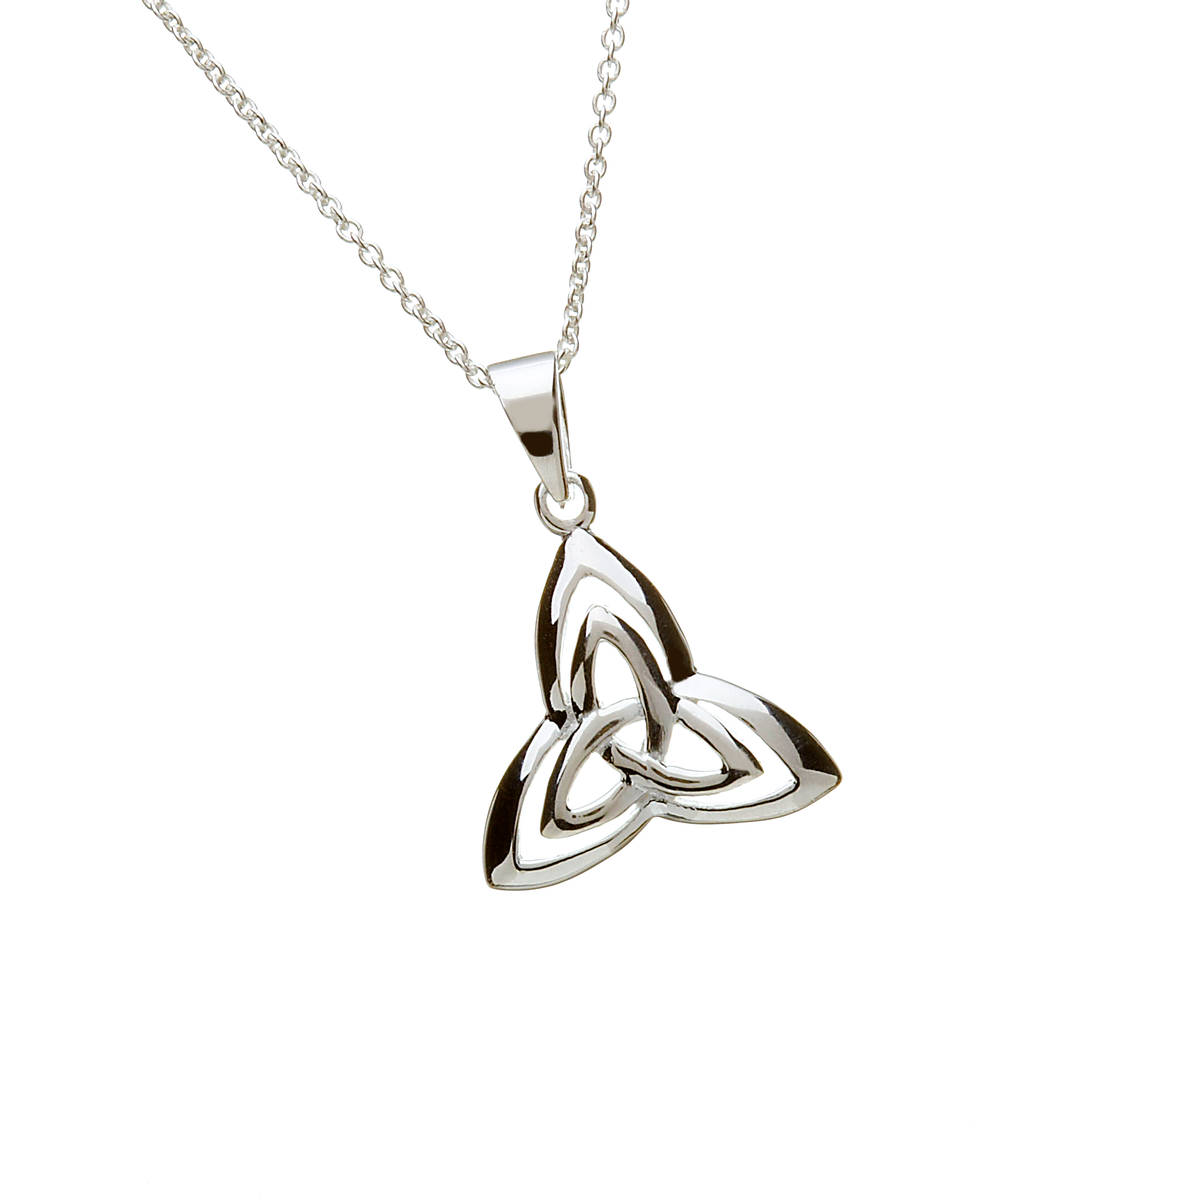 Silver Trinity Knot With Inset Trinity Knot Pendant